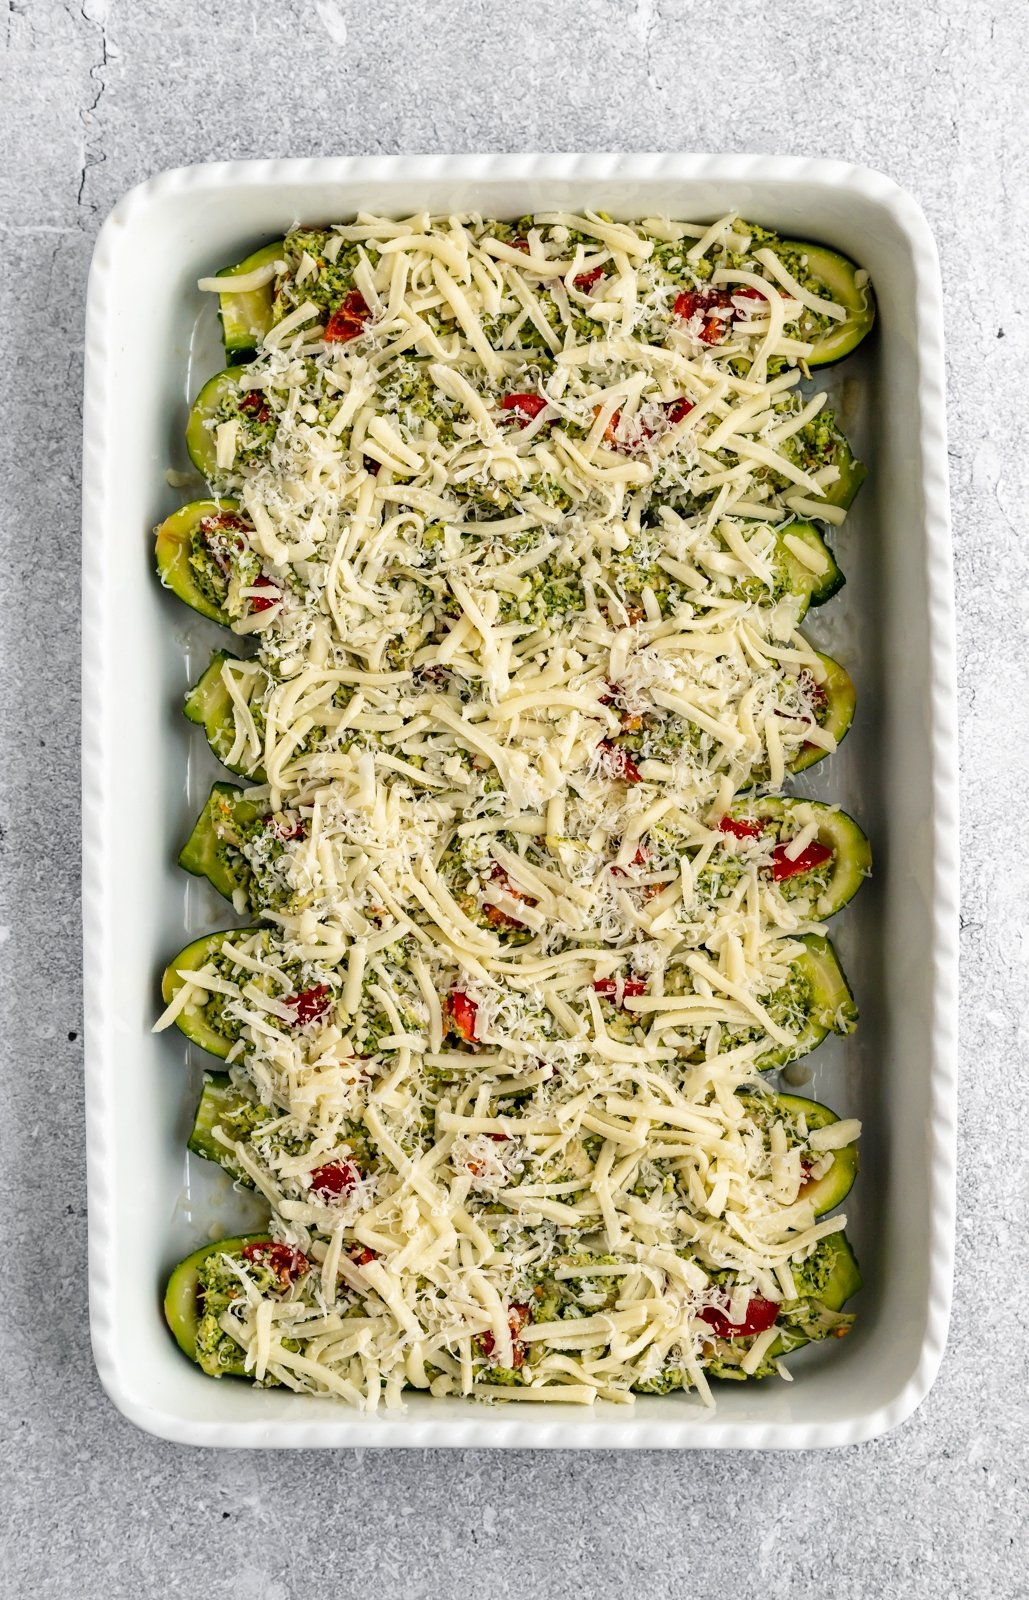 easy pesto chicken zucchini boats unbaked in a baking dish